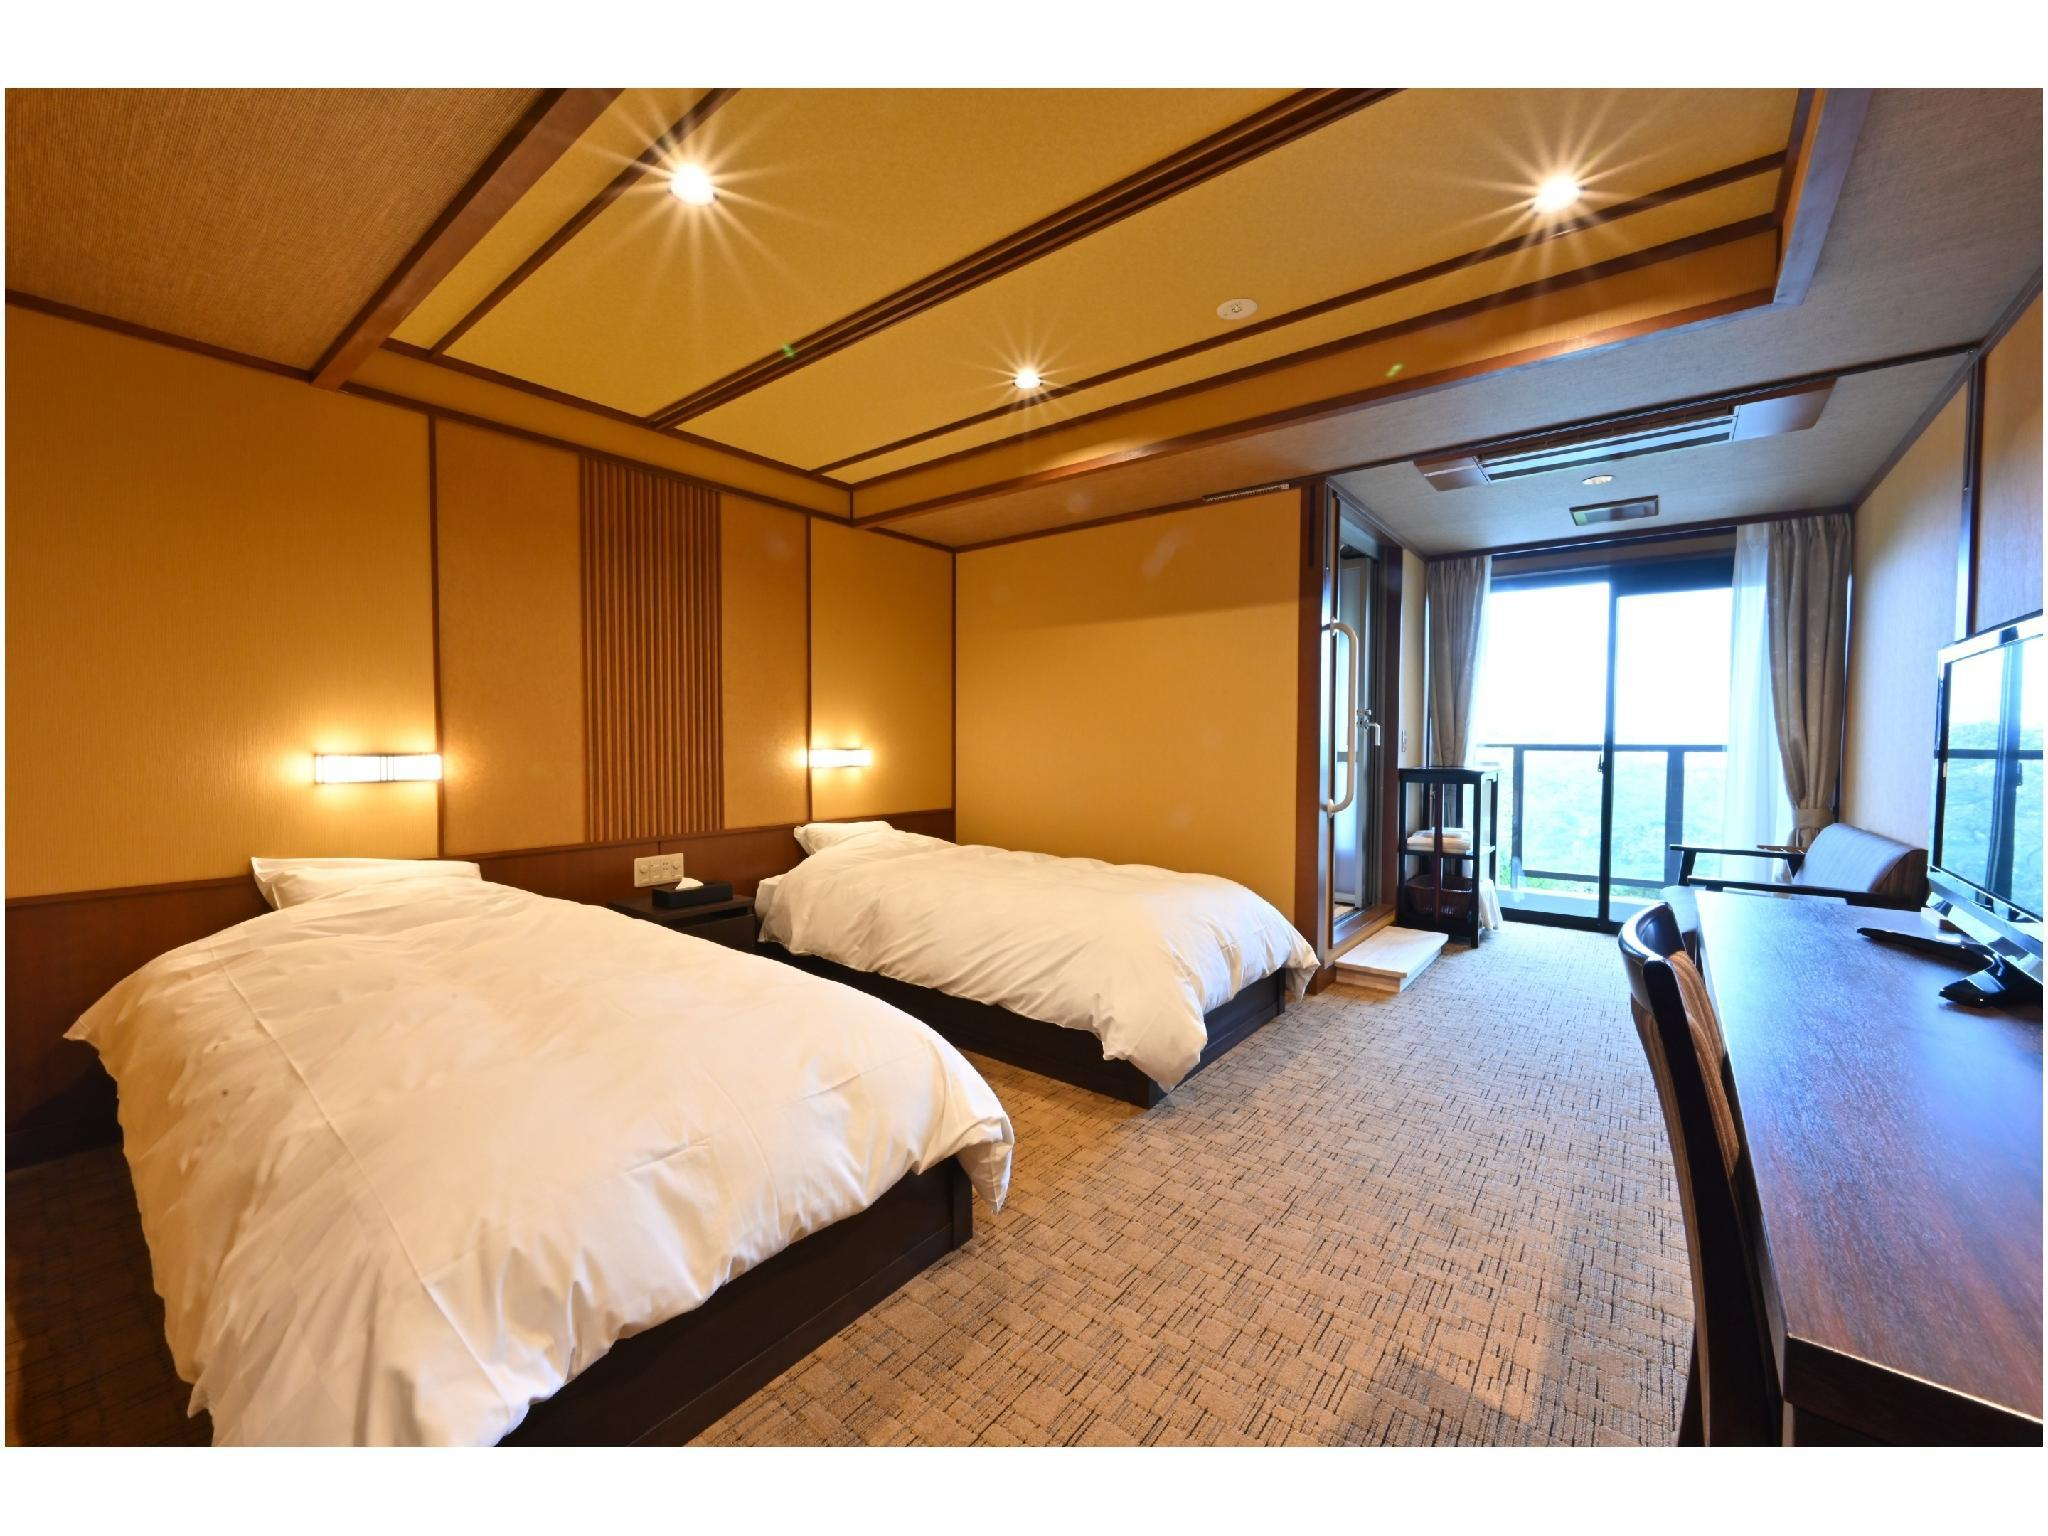 通用雙人雙床房※2019年10月起禁菸 (Universal Twin Room *Non-smoking from Oct. 2019)